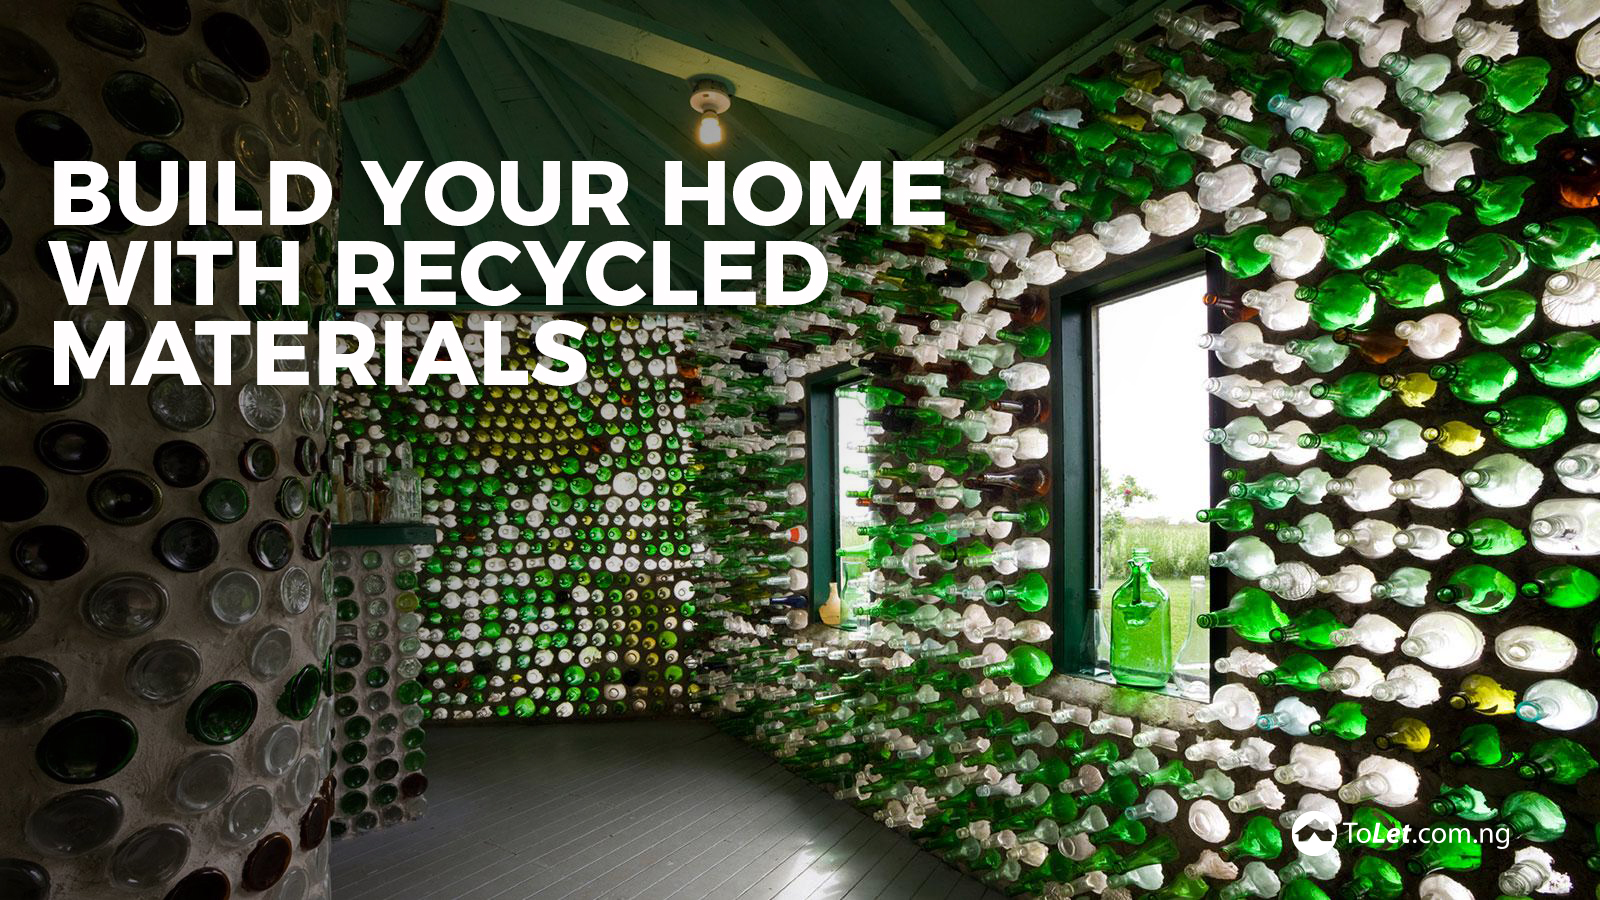 Save cost build your home with recycled materials tolet for Build your house